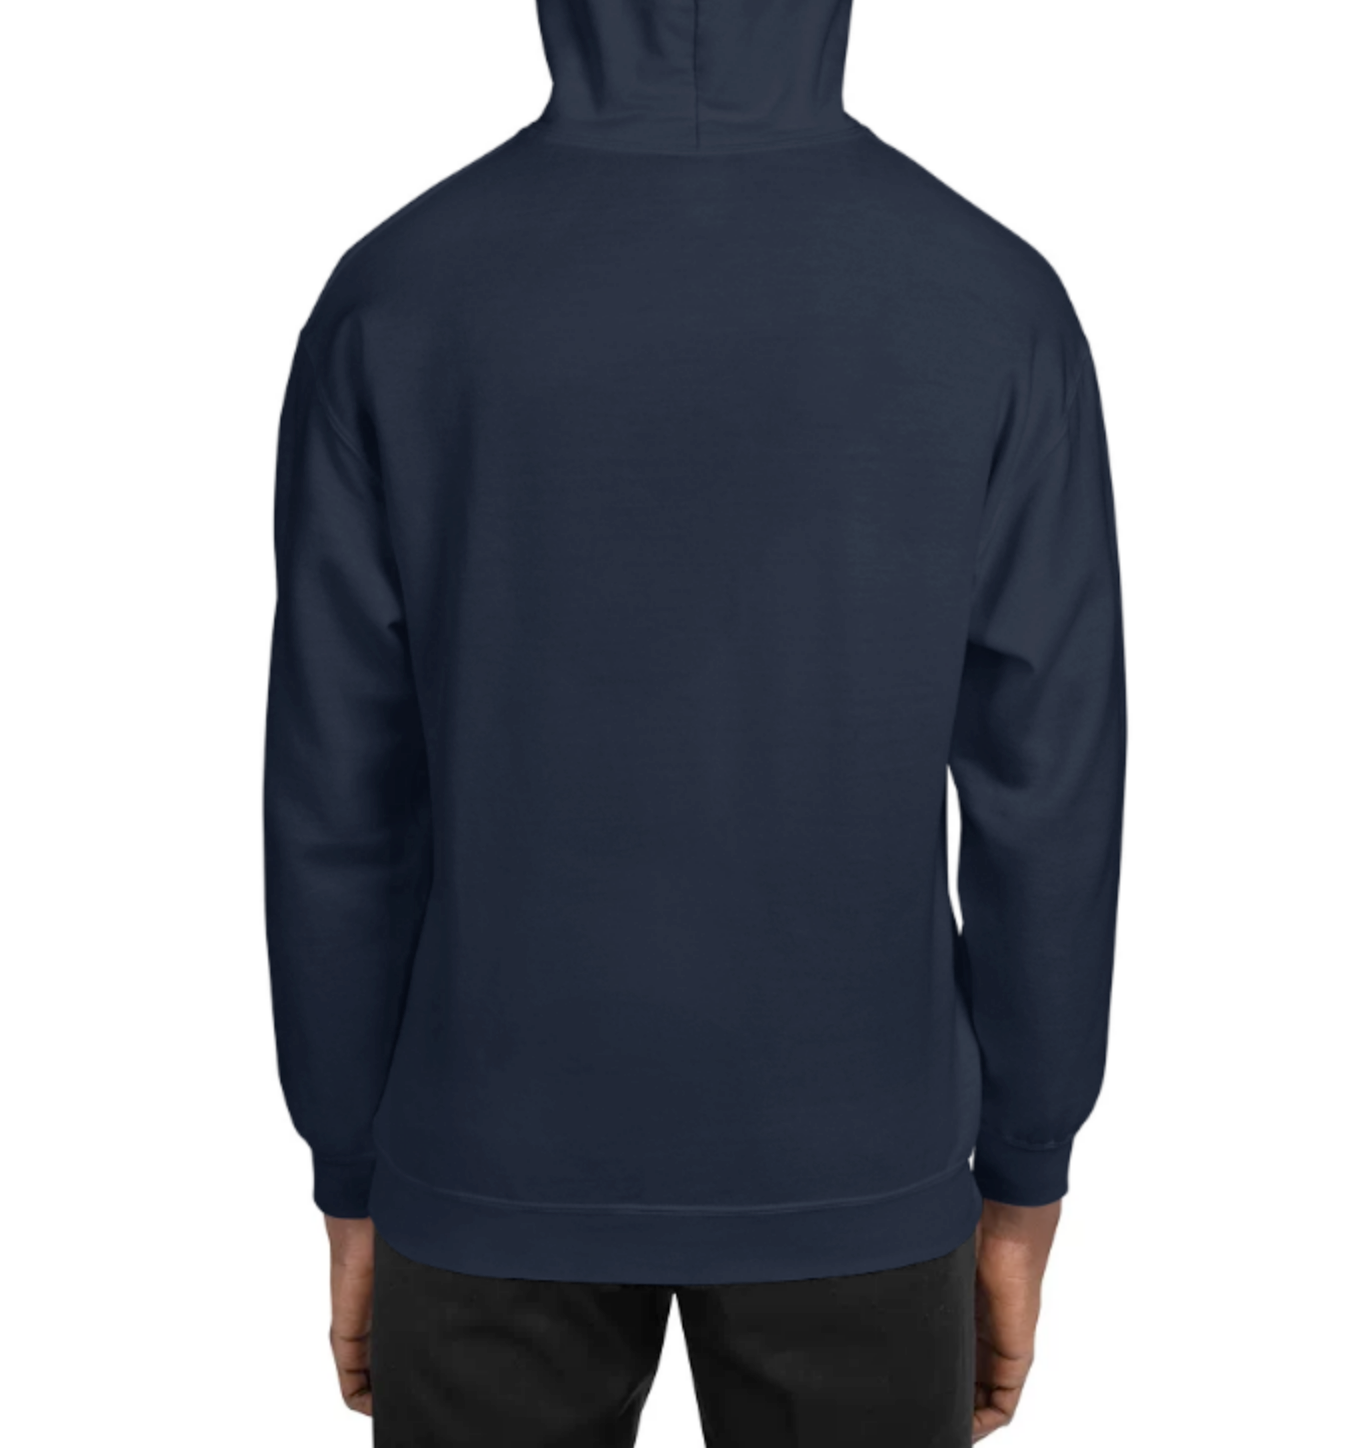 GILDAN DAILY COUNTRY CLUB HOODIE - NAVY/ SPORT GREY